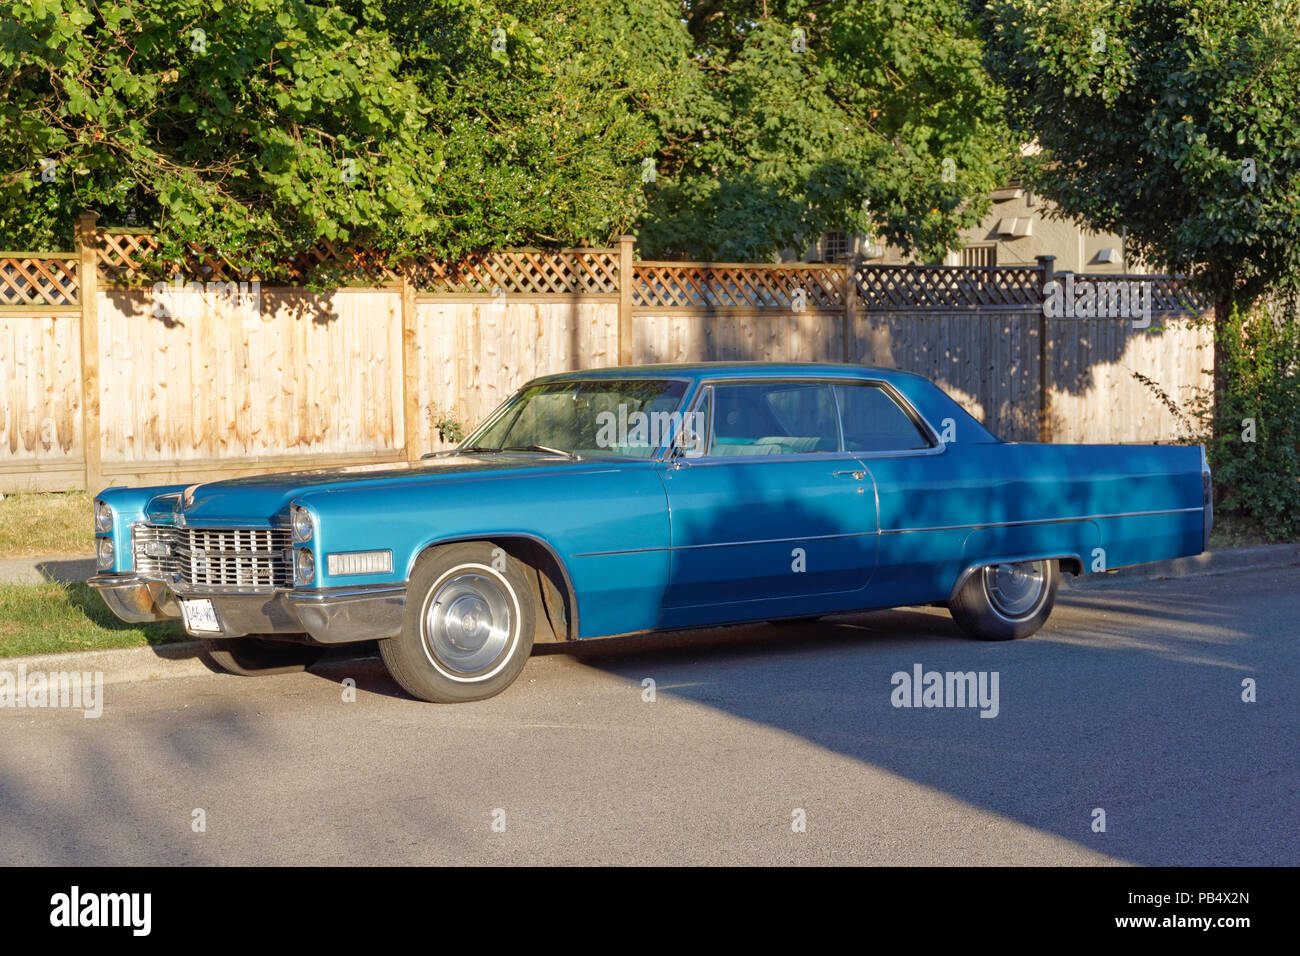 Vintage blue 1966 Coupe de Ville Cadillac two door sedan parked on a residential street in Vancouver, BC, Canada - Stock Image